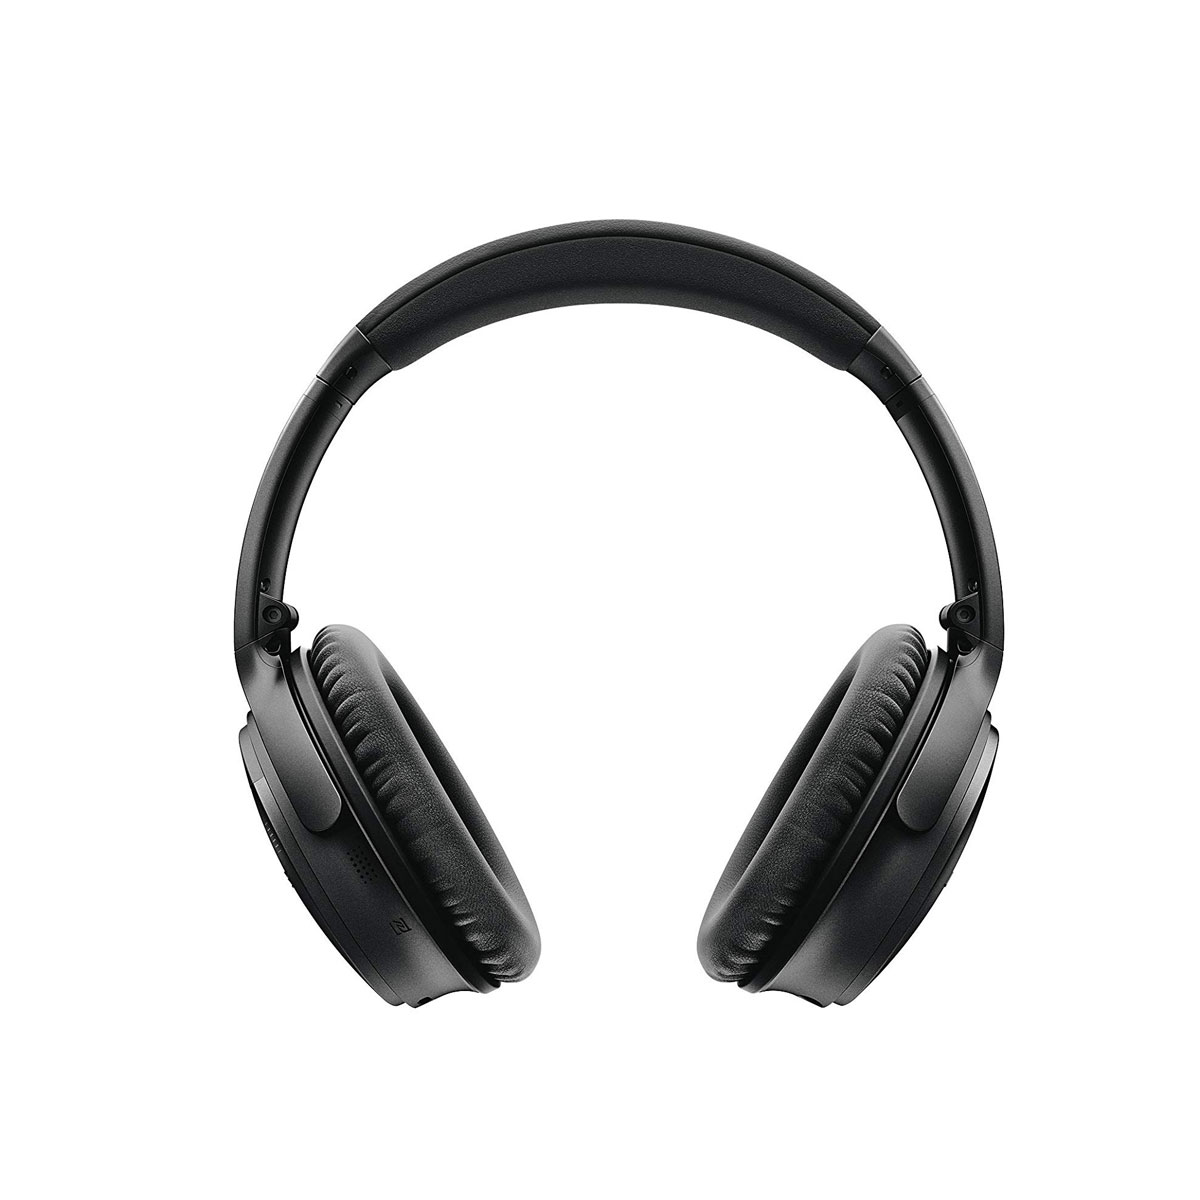 Bose - QuietComfort 35 II Wireless Headphones  - Black